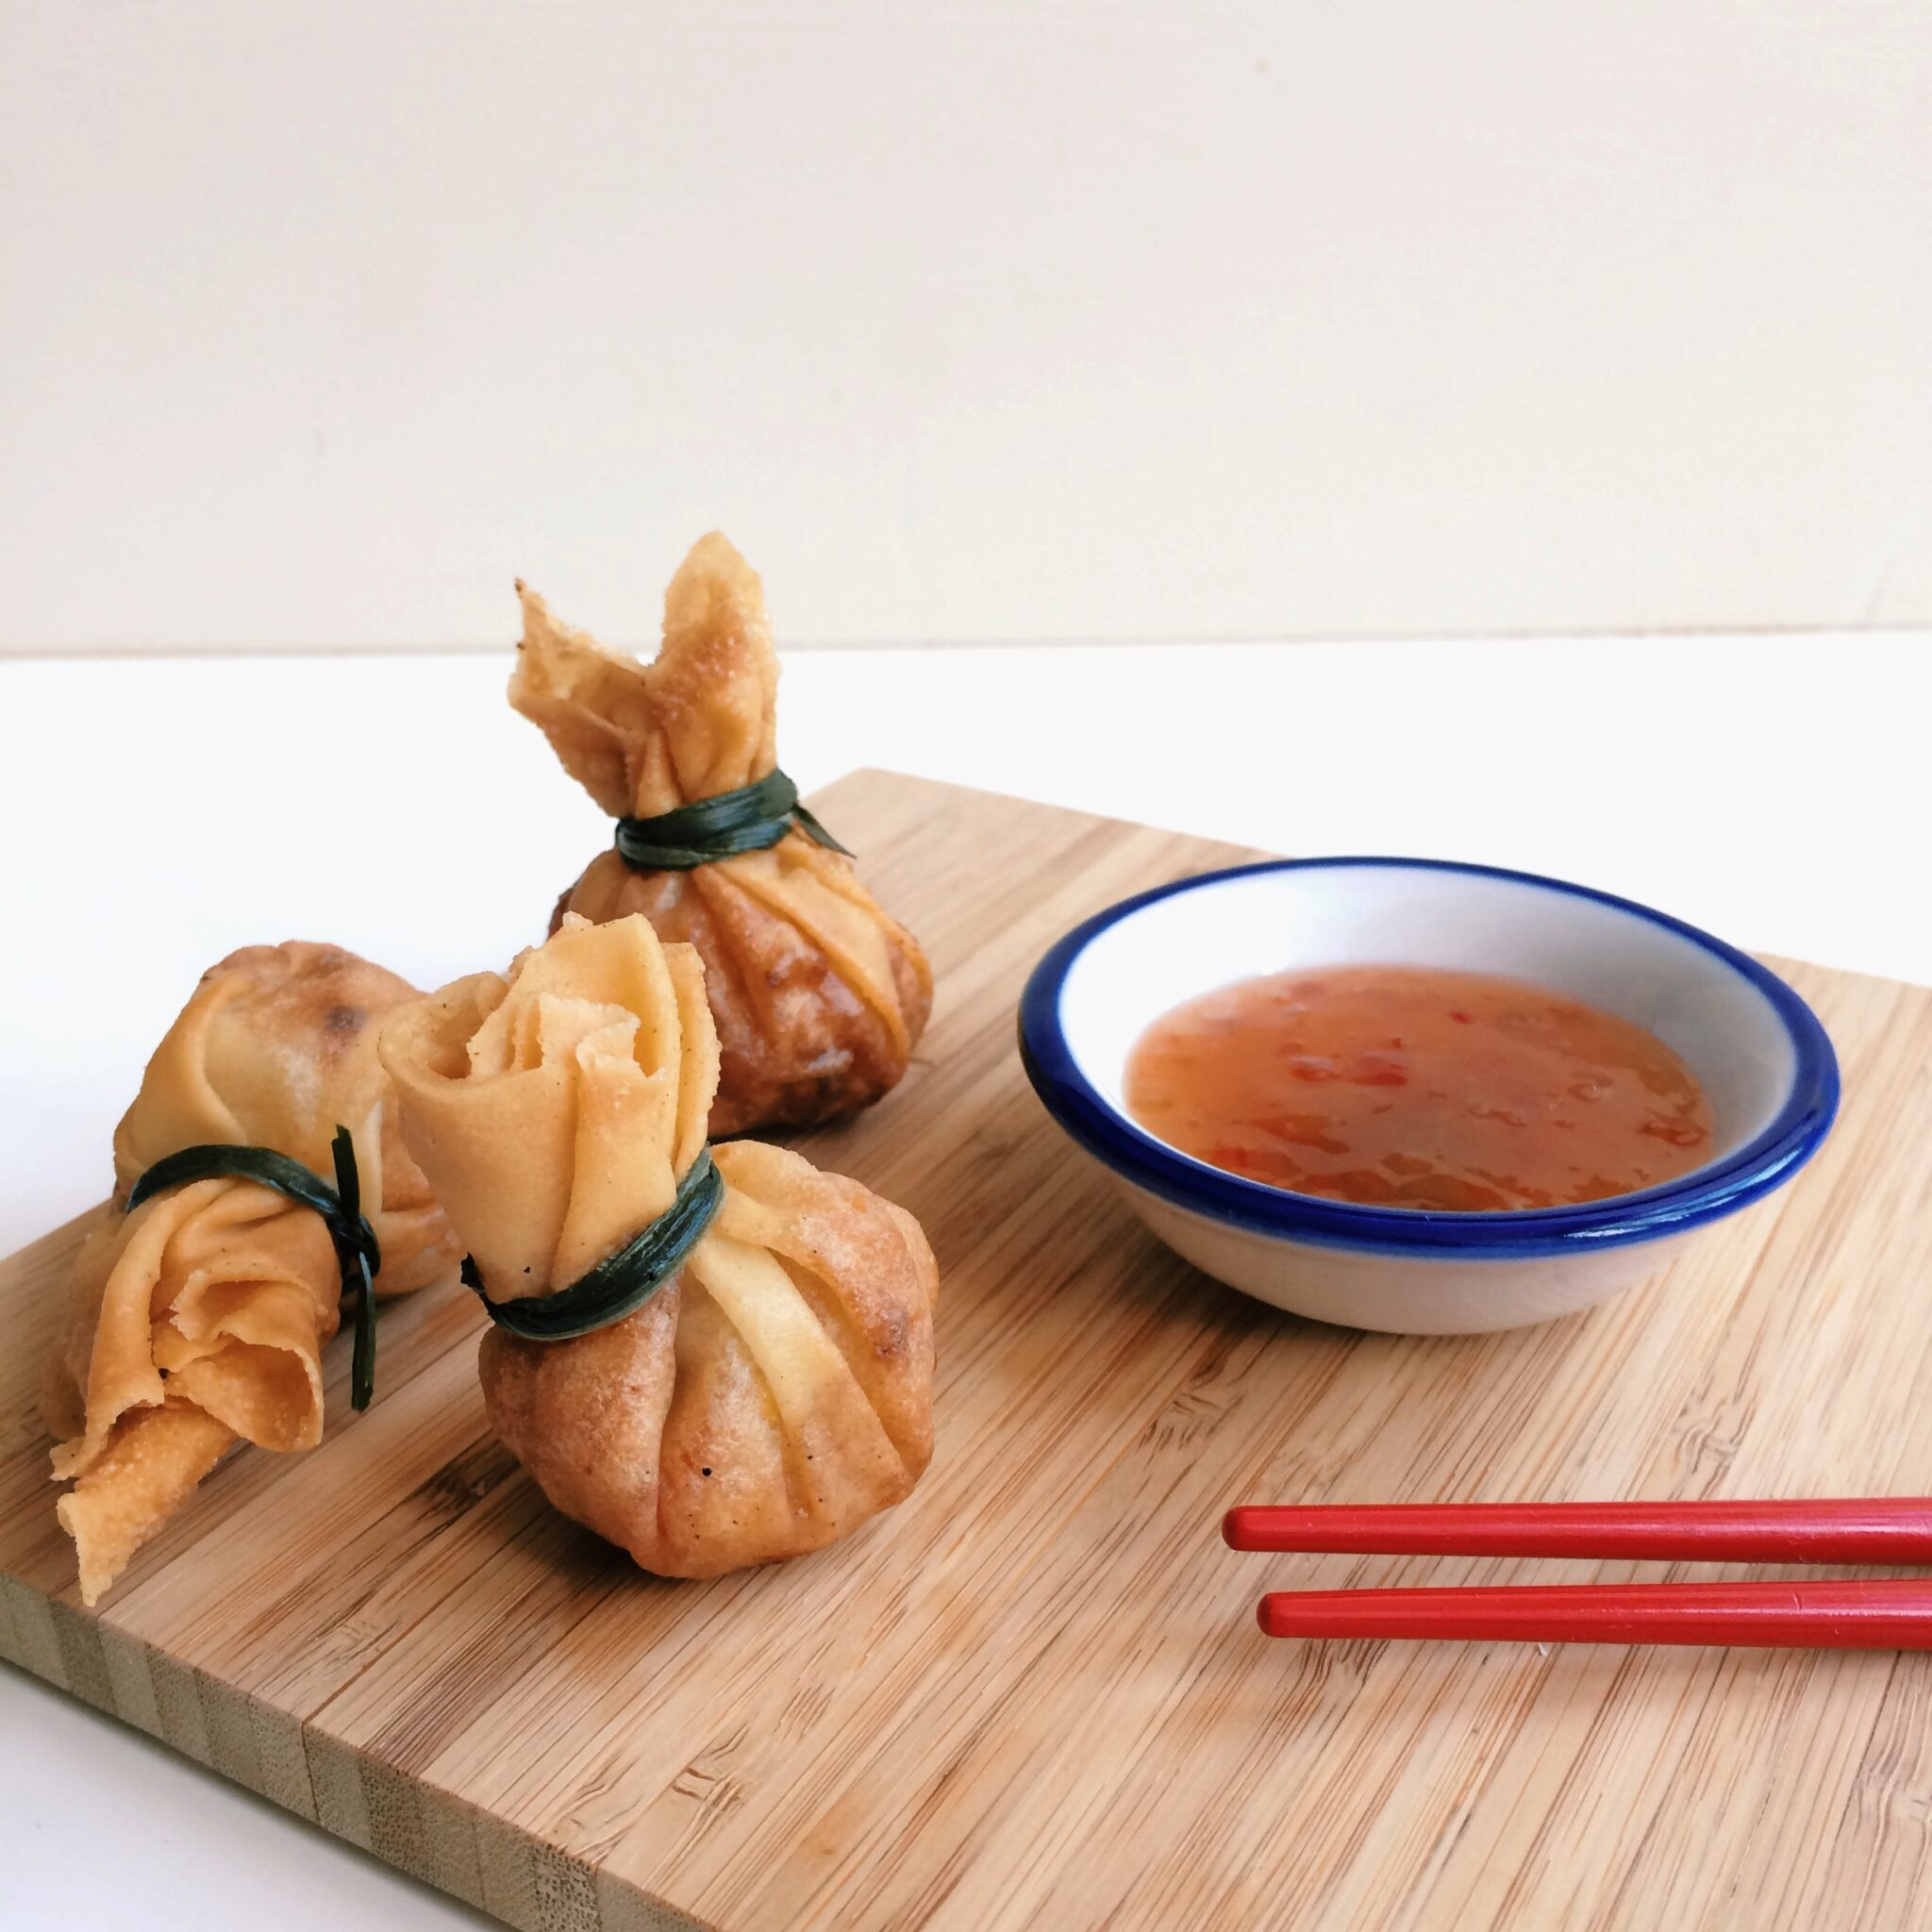 IMG 5106 - Crispy Chinese parcels: TGI Fry Day!